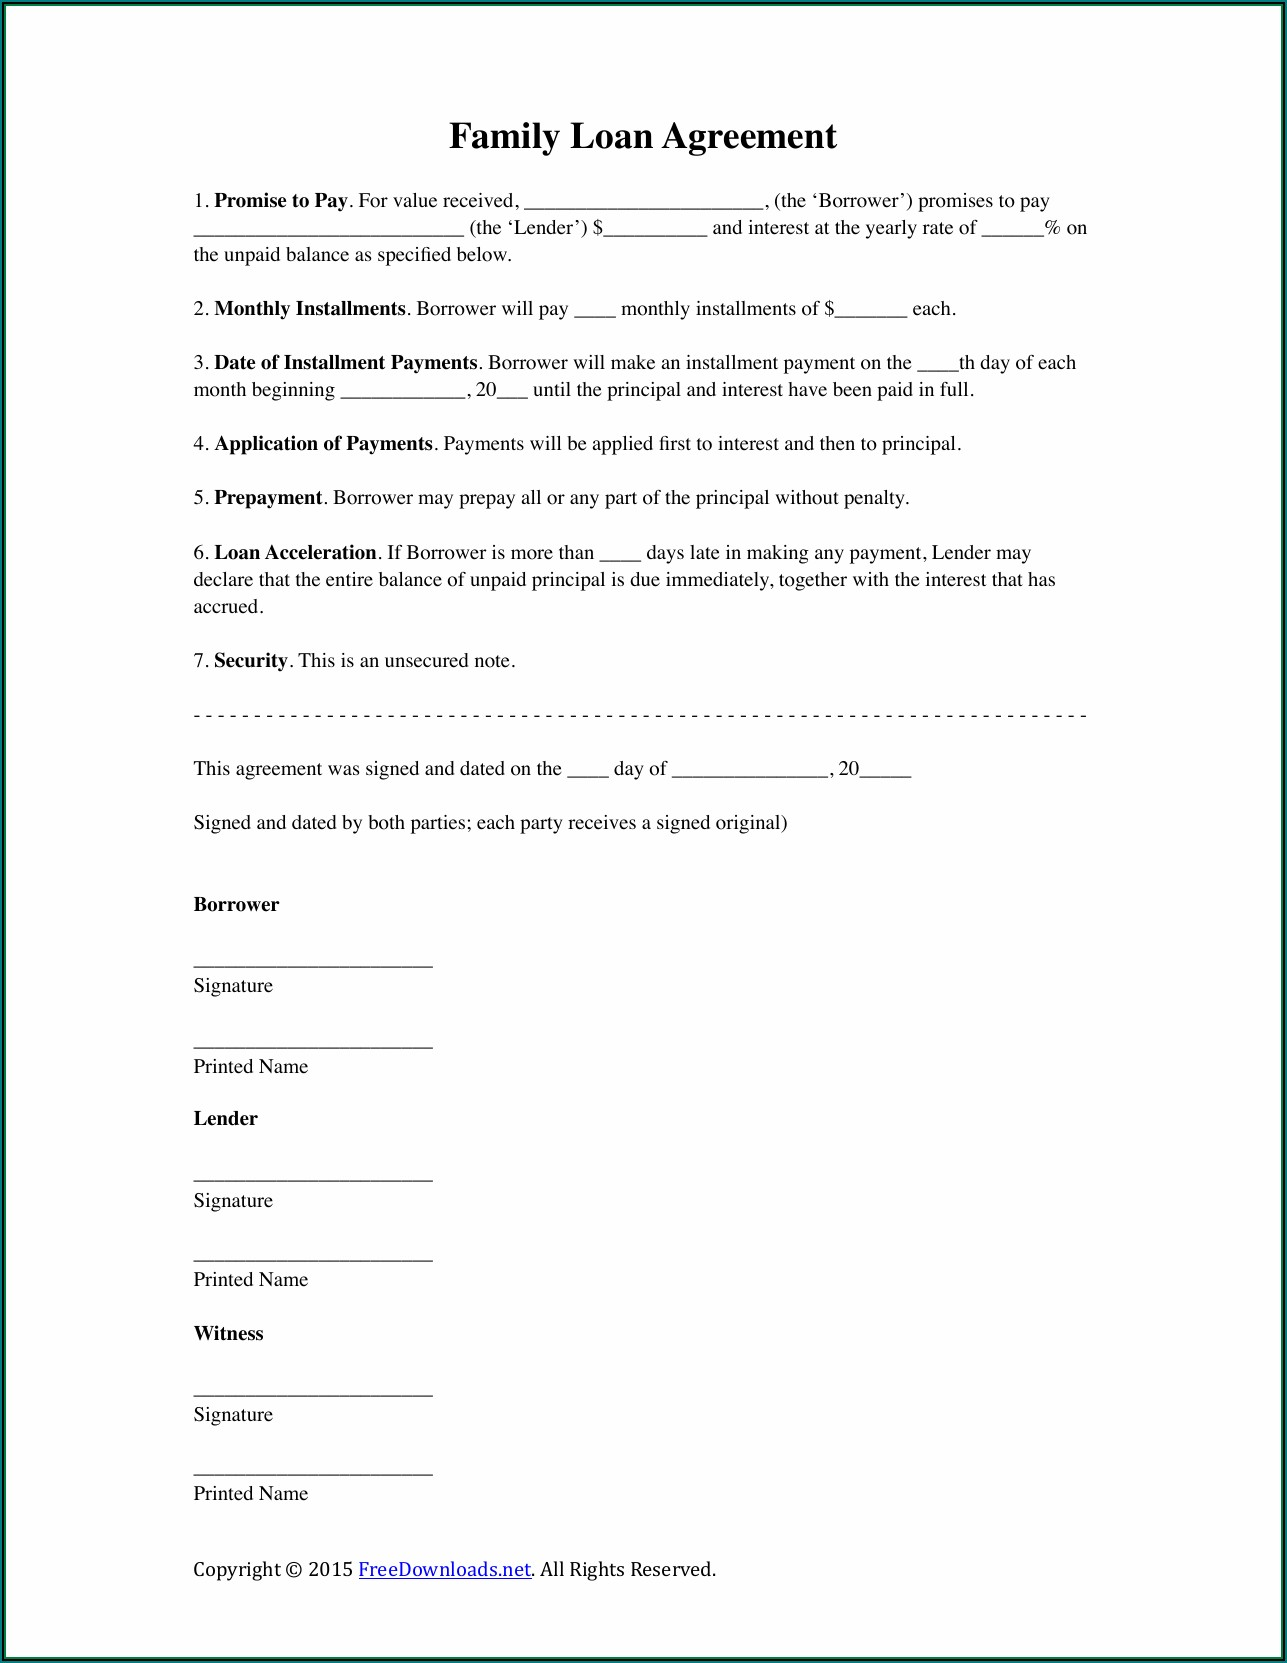 Printable Family Loan Agreement Template